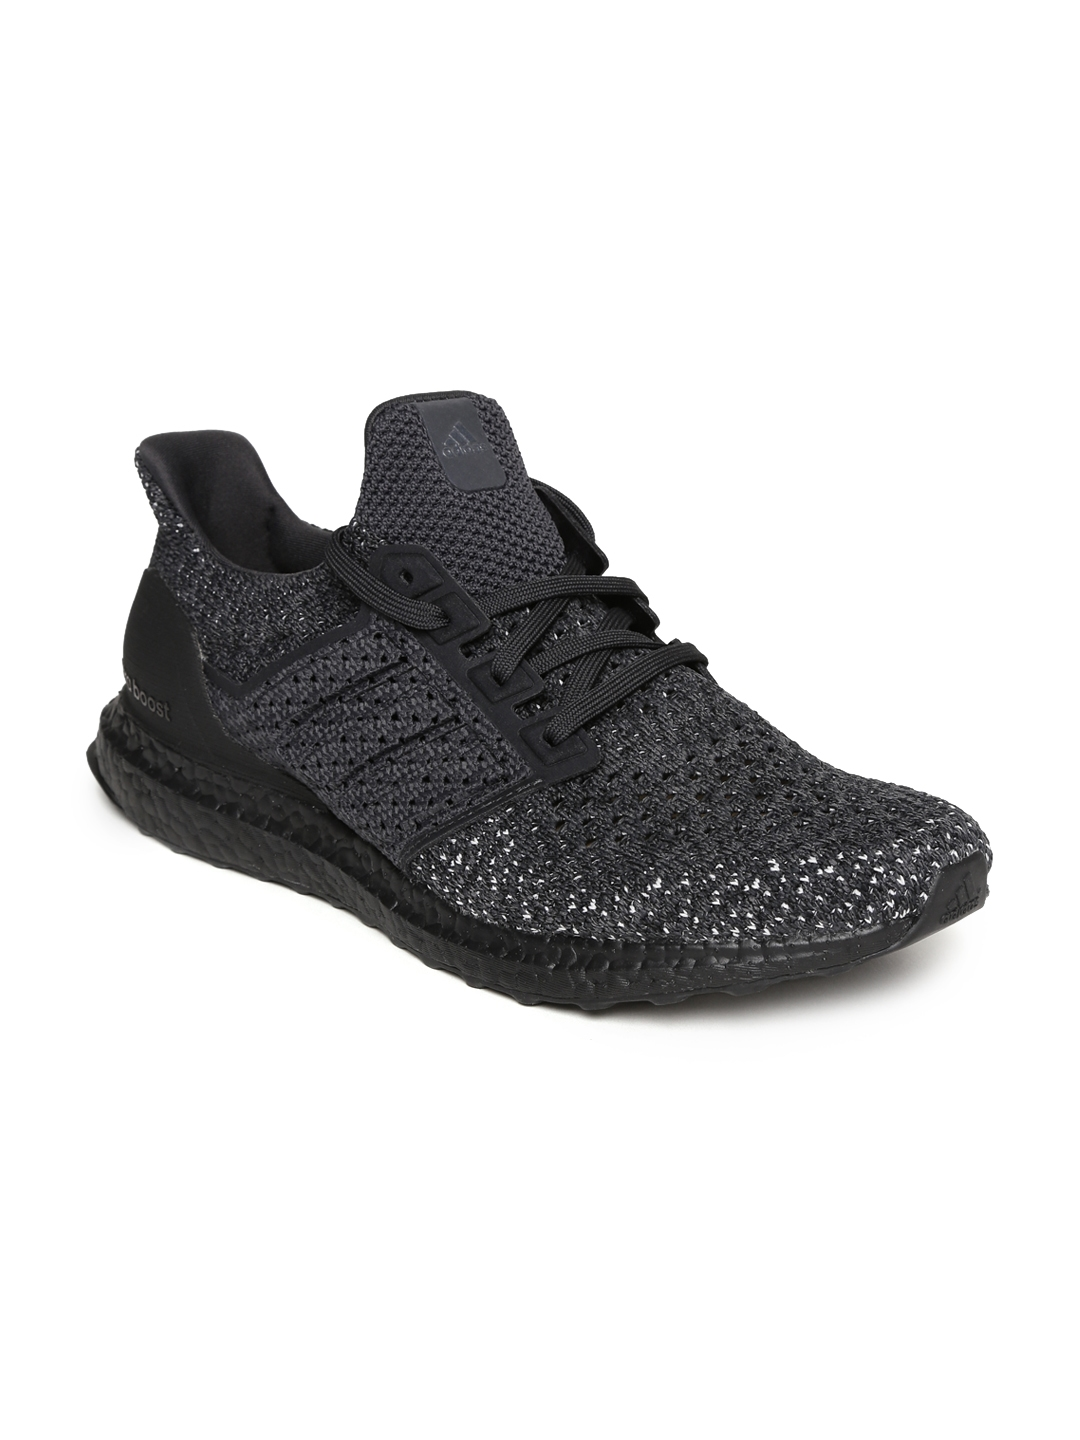 9c5ae2197ca82 Buy ADIDAS Men Black ULTRABOOST CLIMA Running Shoes - Sports Shoes ...